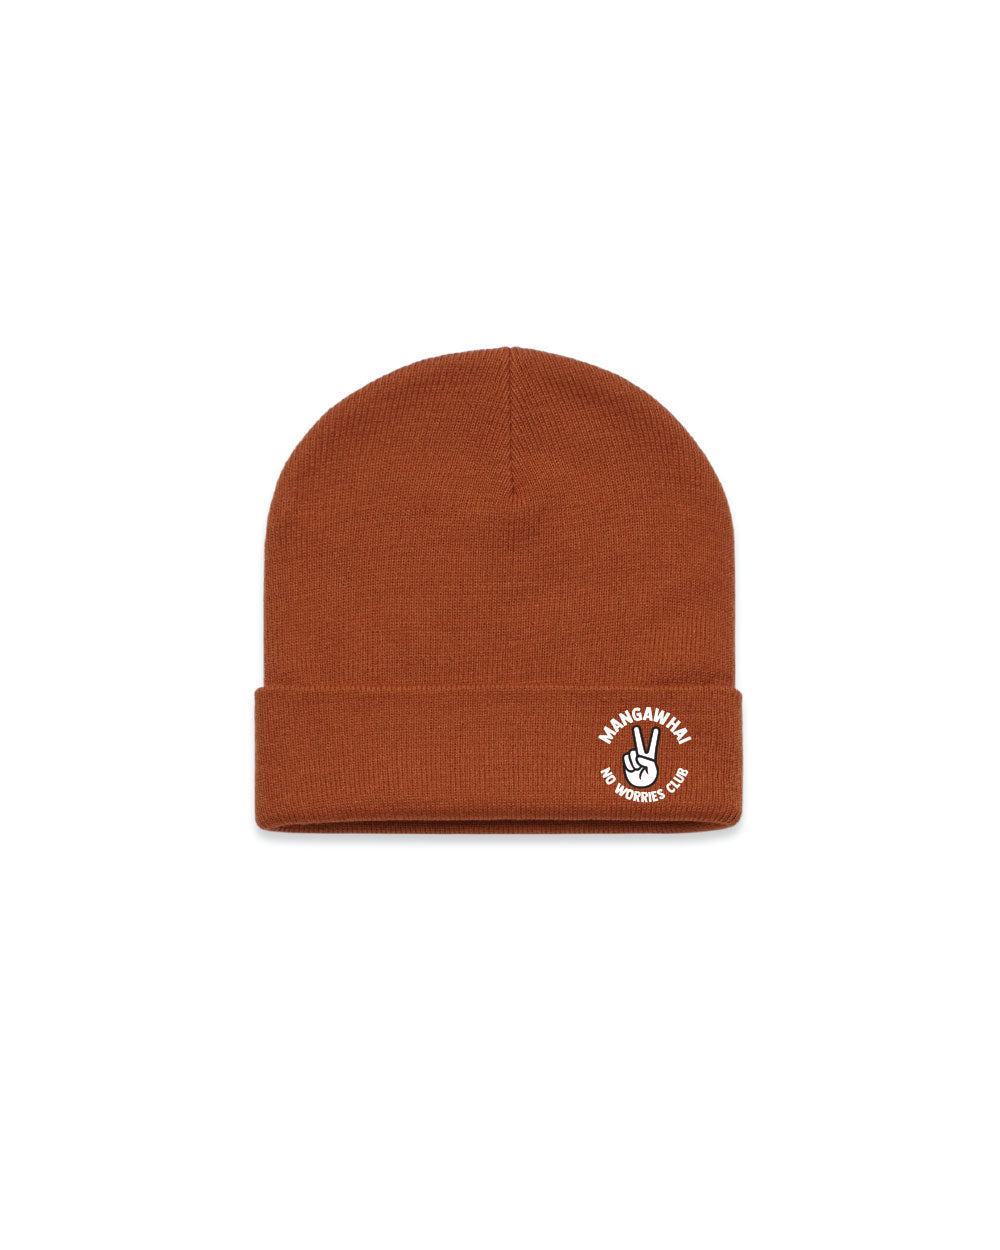 No Worries Rust Beanie - Threadbox